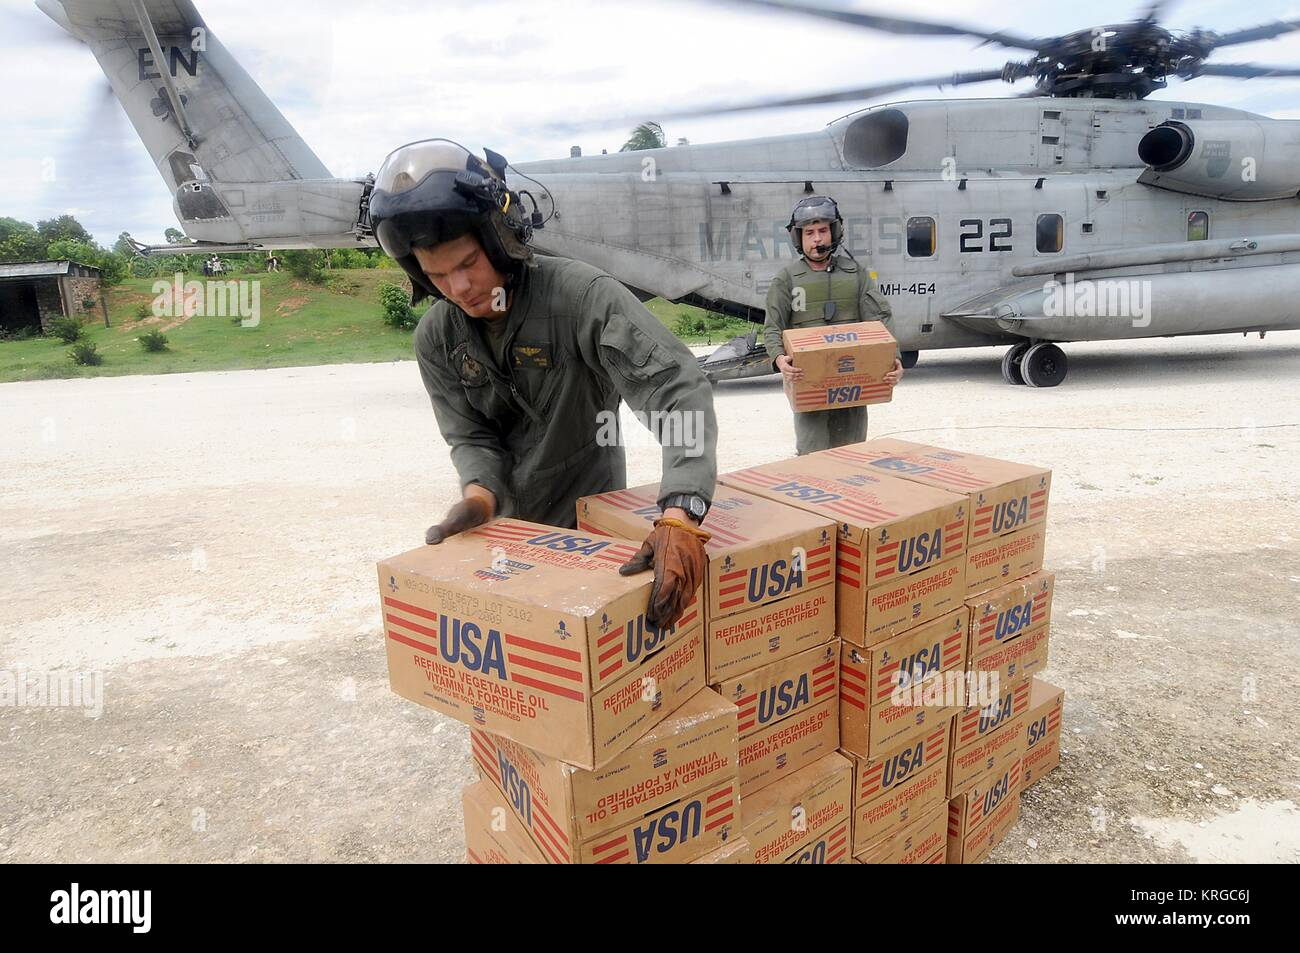 U.S. Marine soldiers unload disaster relief supplies during a humanitarian assistance mission to areas affected - Stock Image